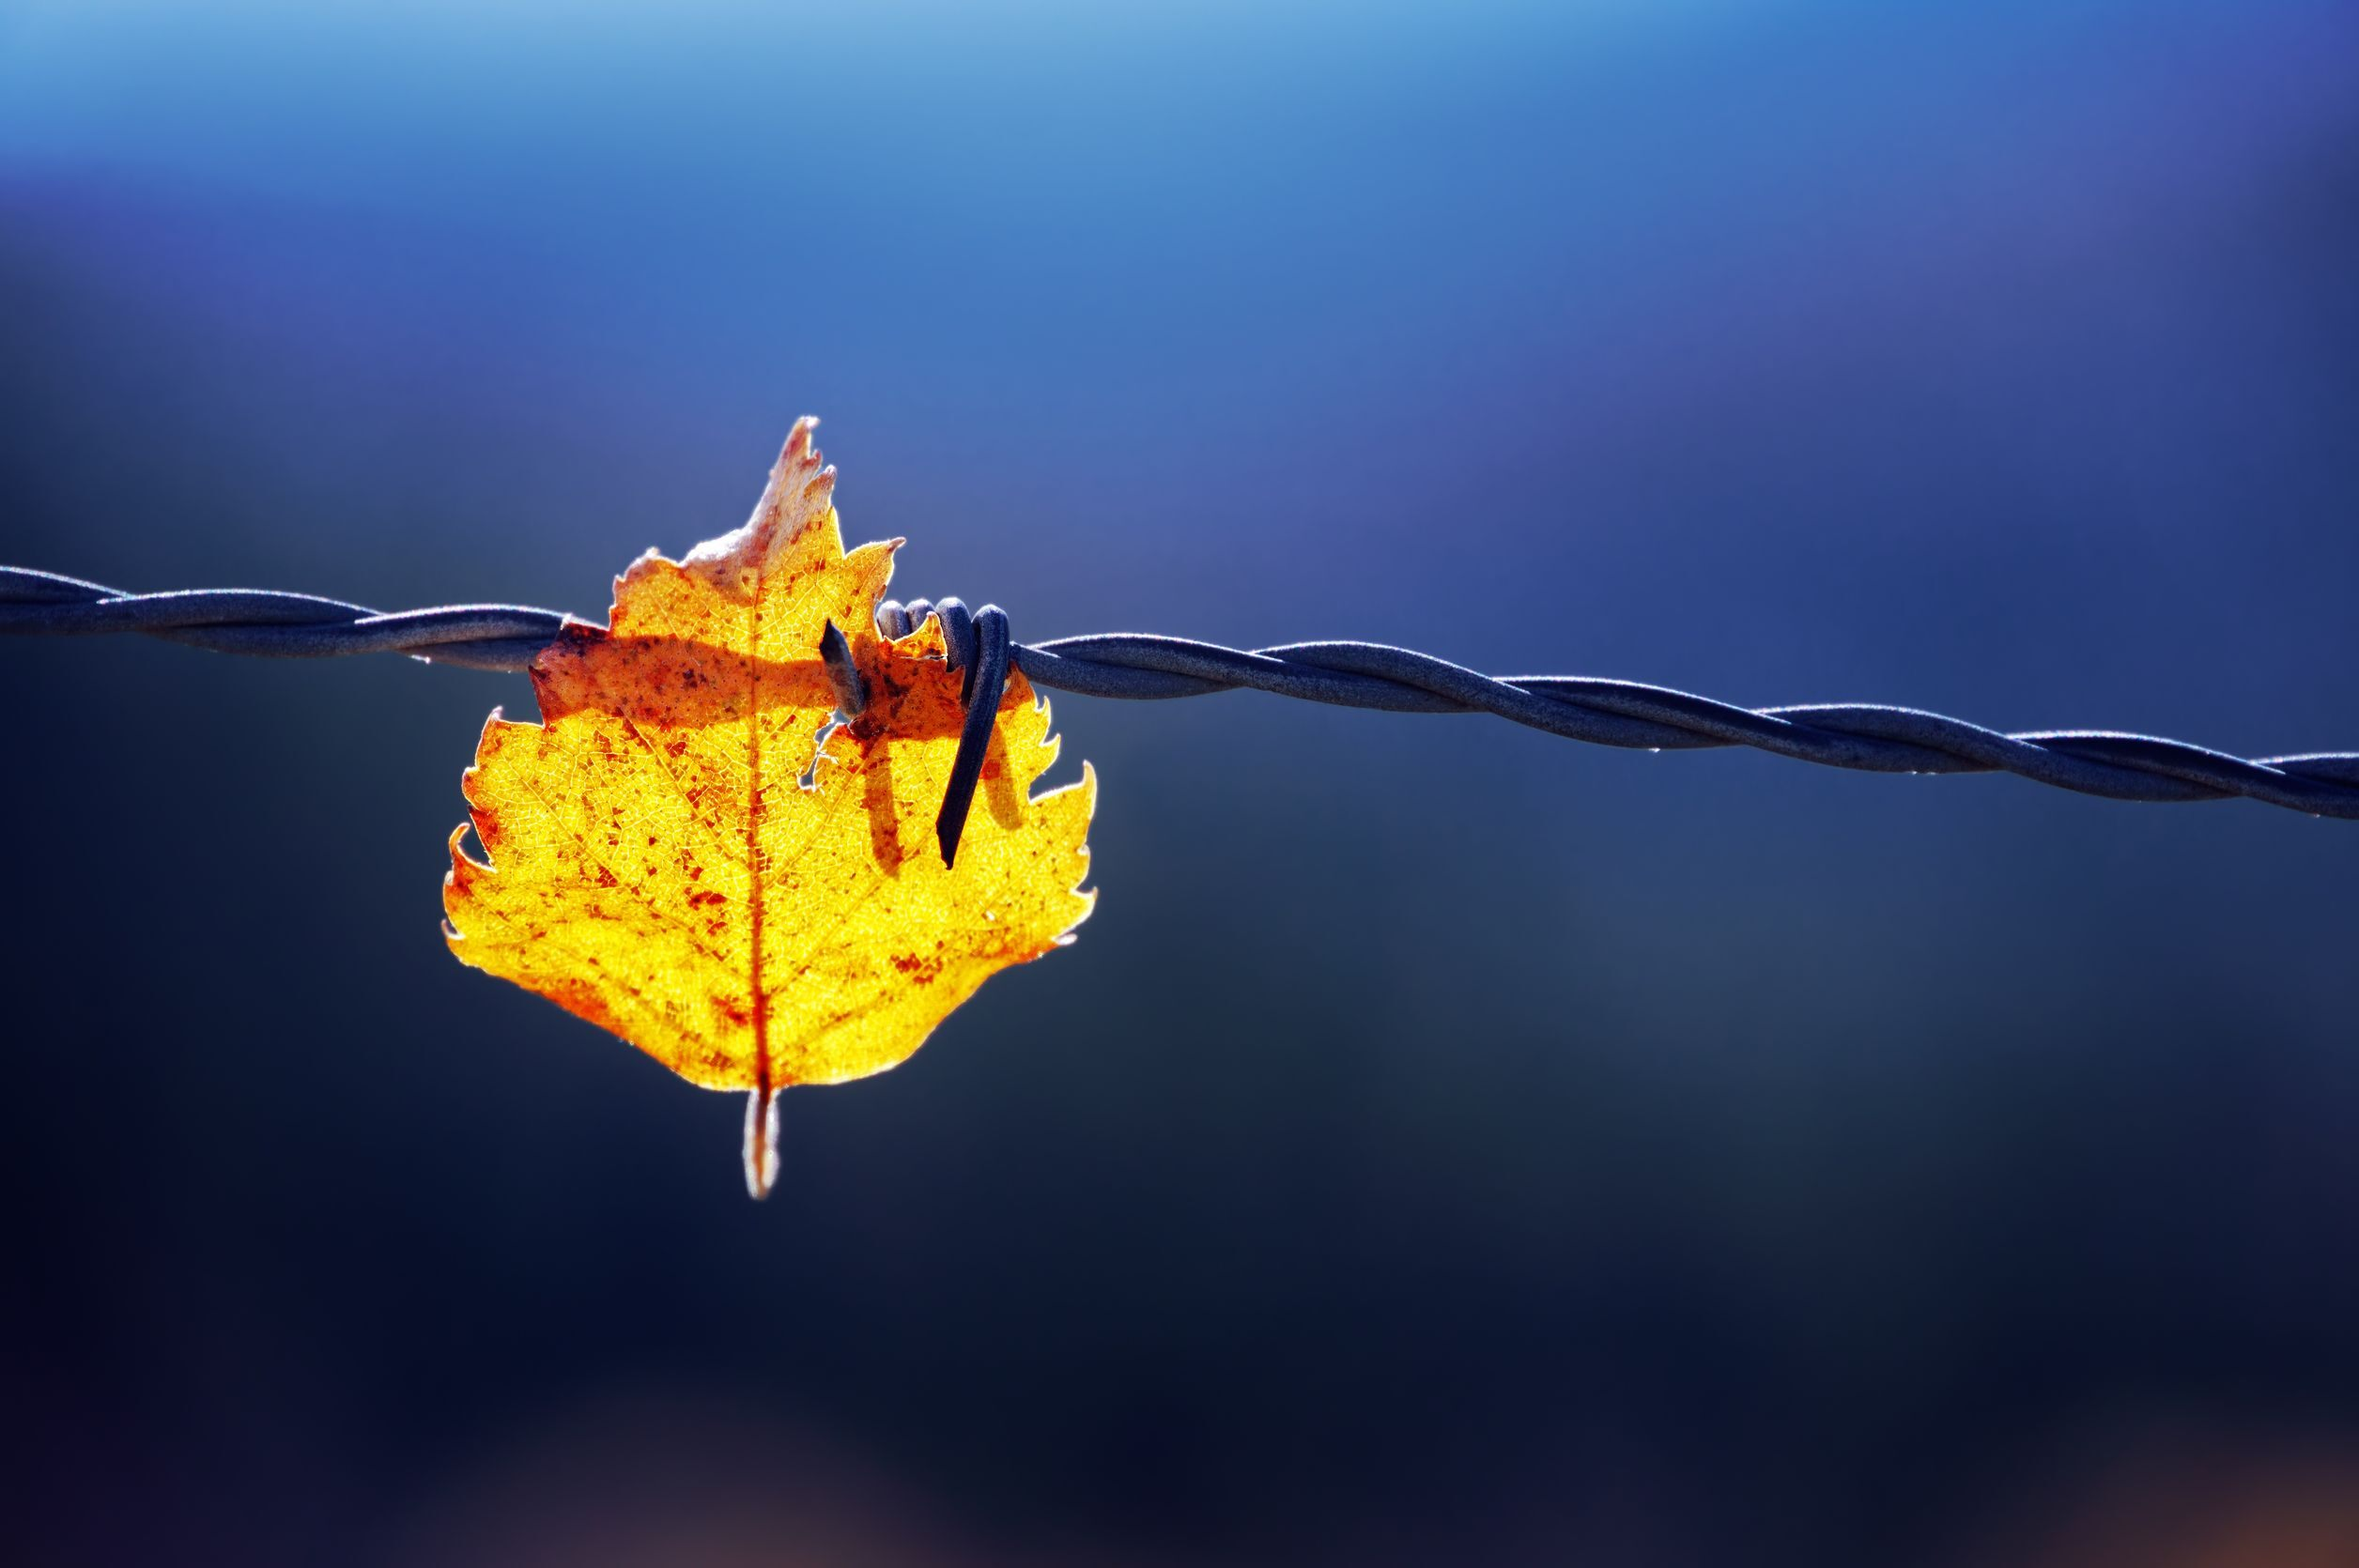 20762573 - trapped leaf on barbed wire